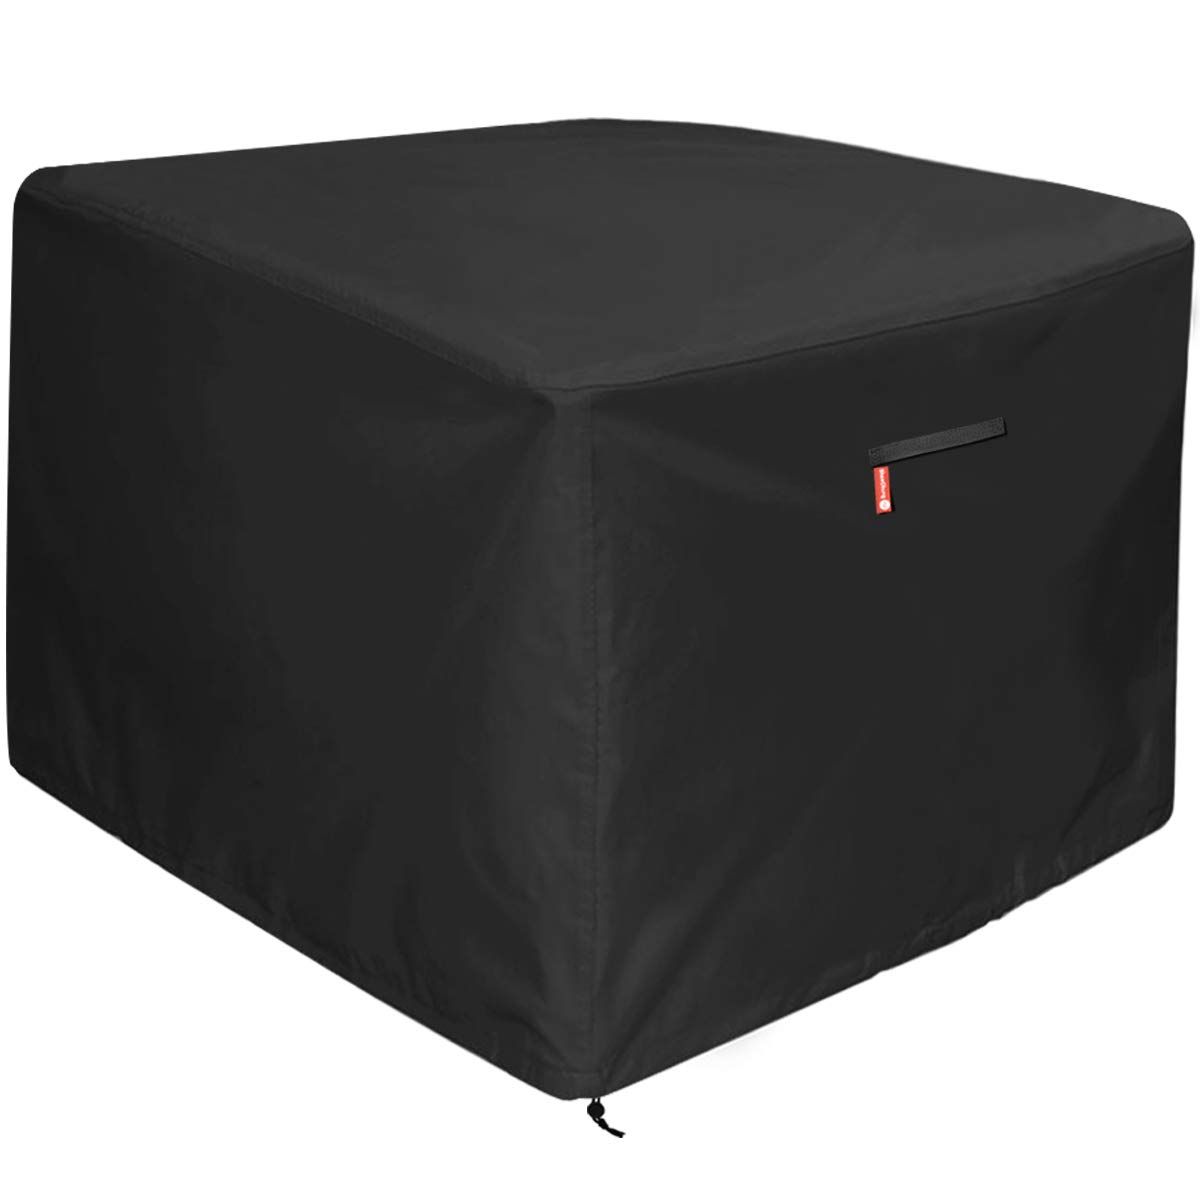 """Gas Fire Pit Cover Square - Premium Patio Outdoor Cover Heavy Duty Fabric with PVC Coating,100% Waterproof,Anti-Crack,Fits for 30 inch,31 inch,32 inch Fire Pit / Table Cover (32""""L x 32""""W x 24""""H,Black)"""